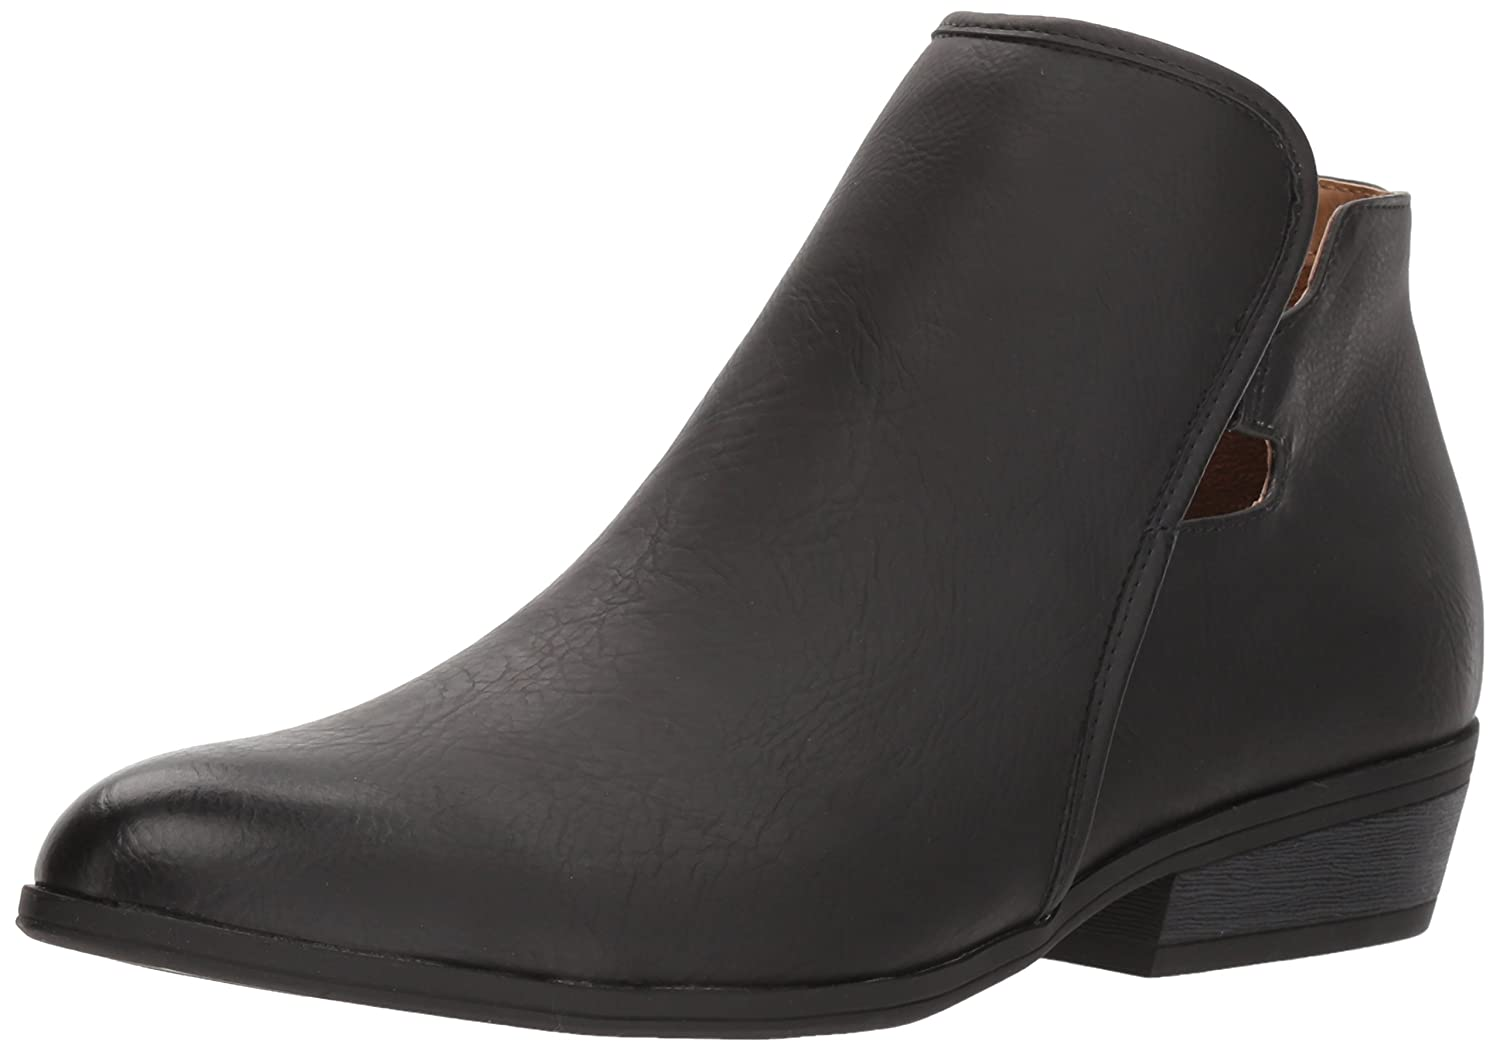 NATURAL SOUL Women's Harvard Ankle Boot B0763M4P22 9 M US|Black